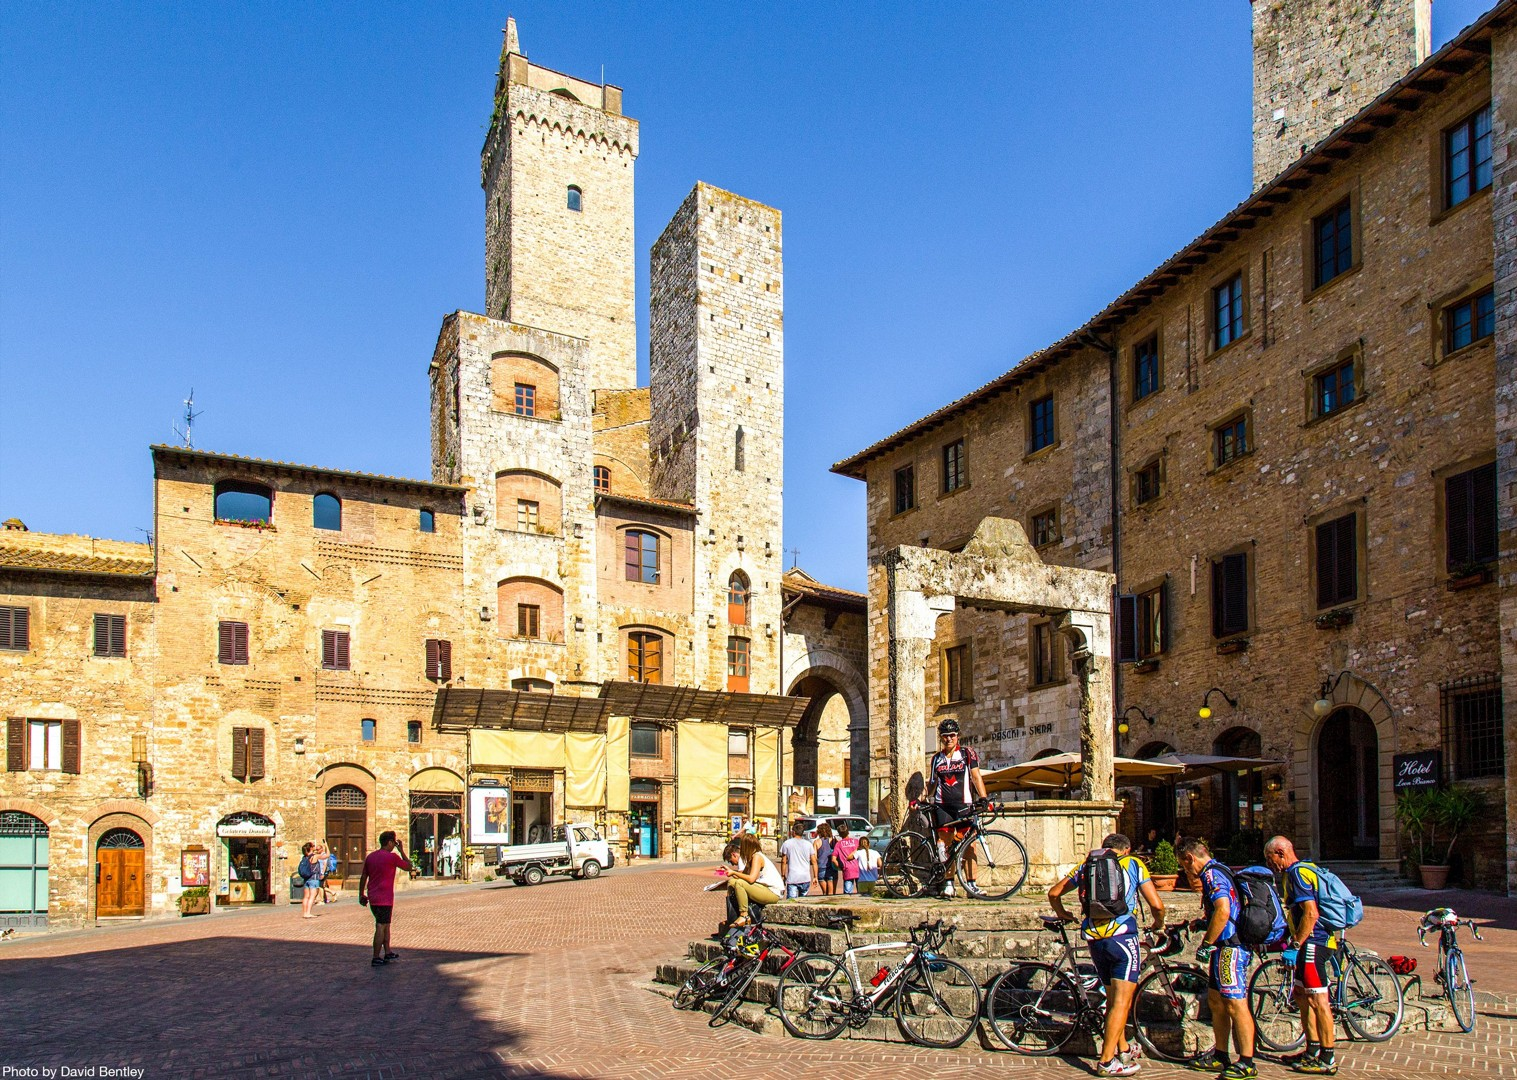 0049 Day 3 Tuscany Square.jpg - Italy - Tuscany - Giro della Toscana - Guided Road Cycling Holiday - Road Cycling